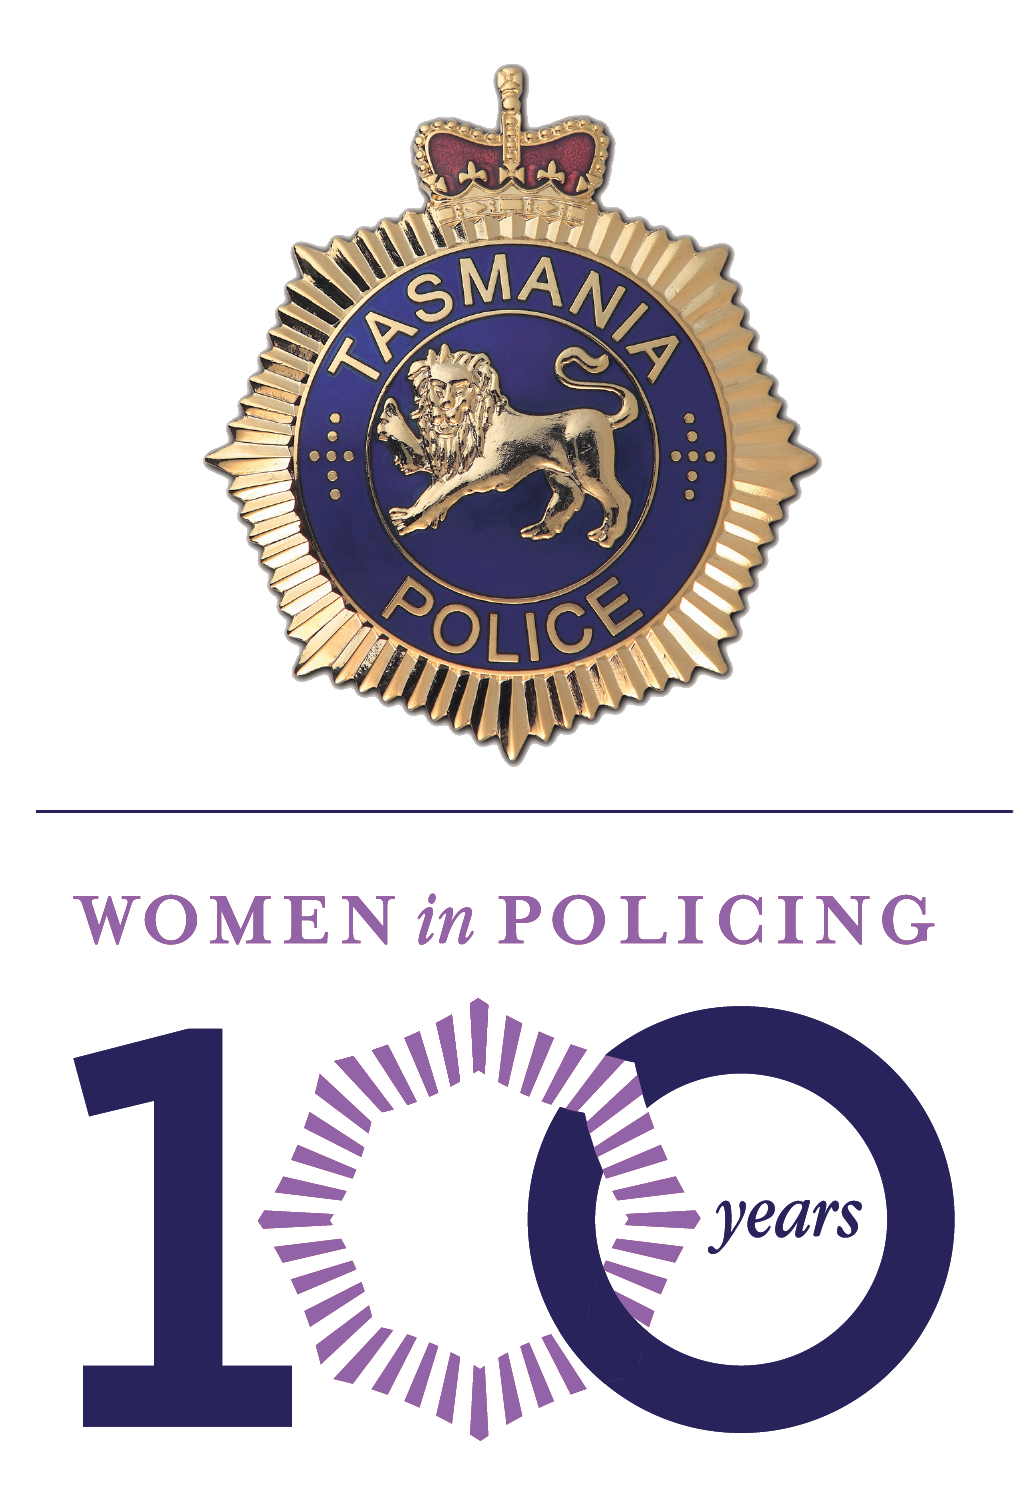 Tasmania Police 100 Years of Women in Policing logo